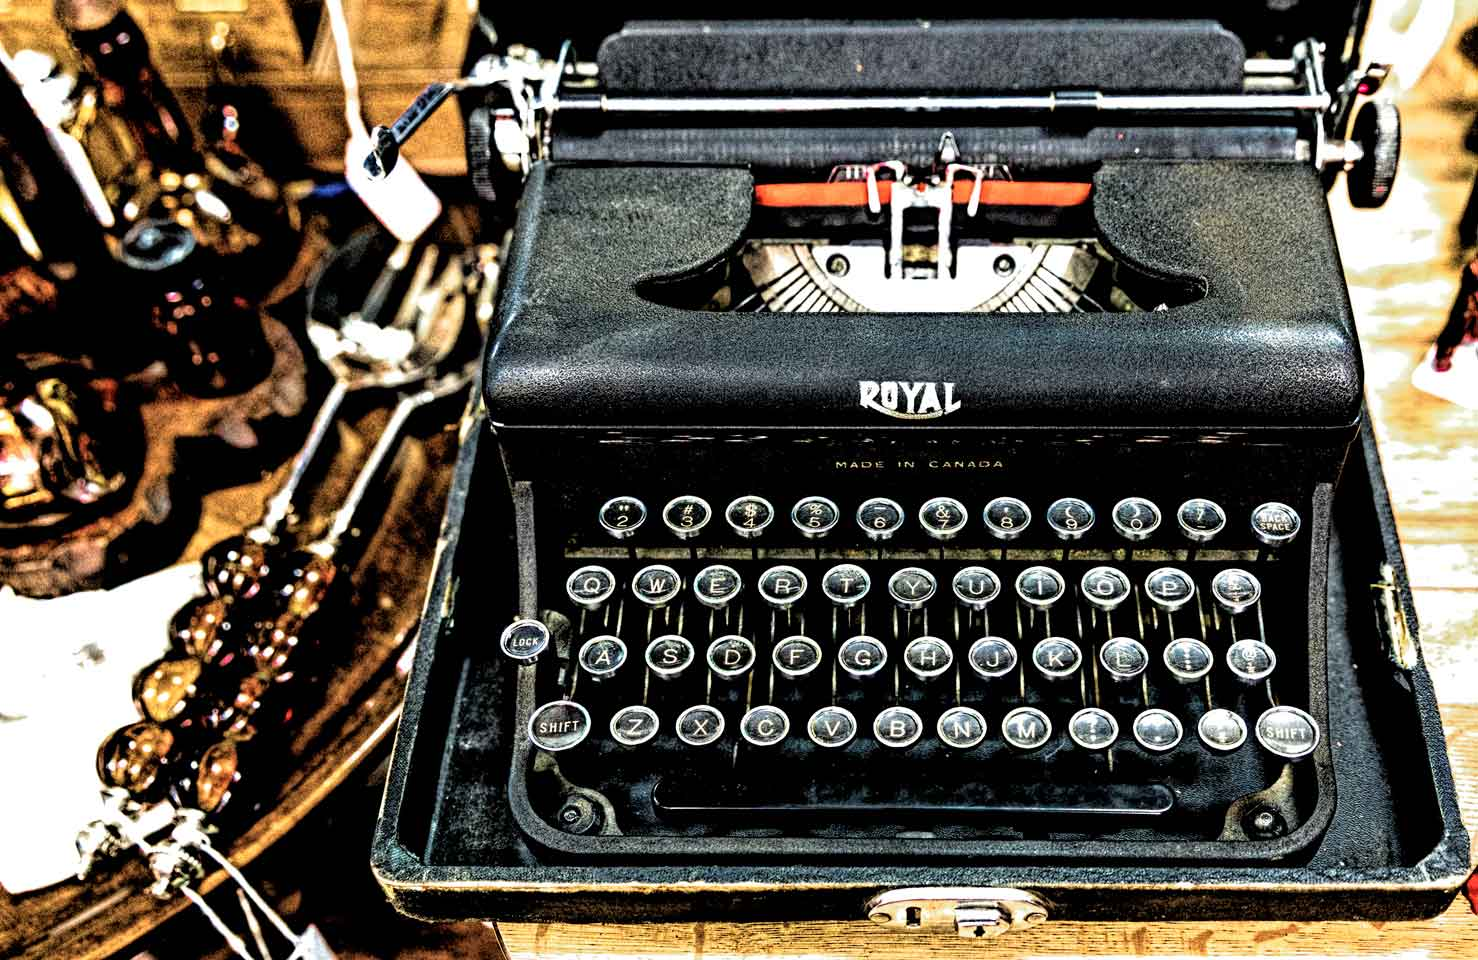 Old typewriter for sale once used for writing